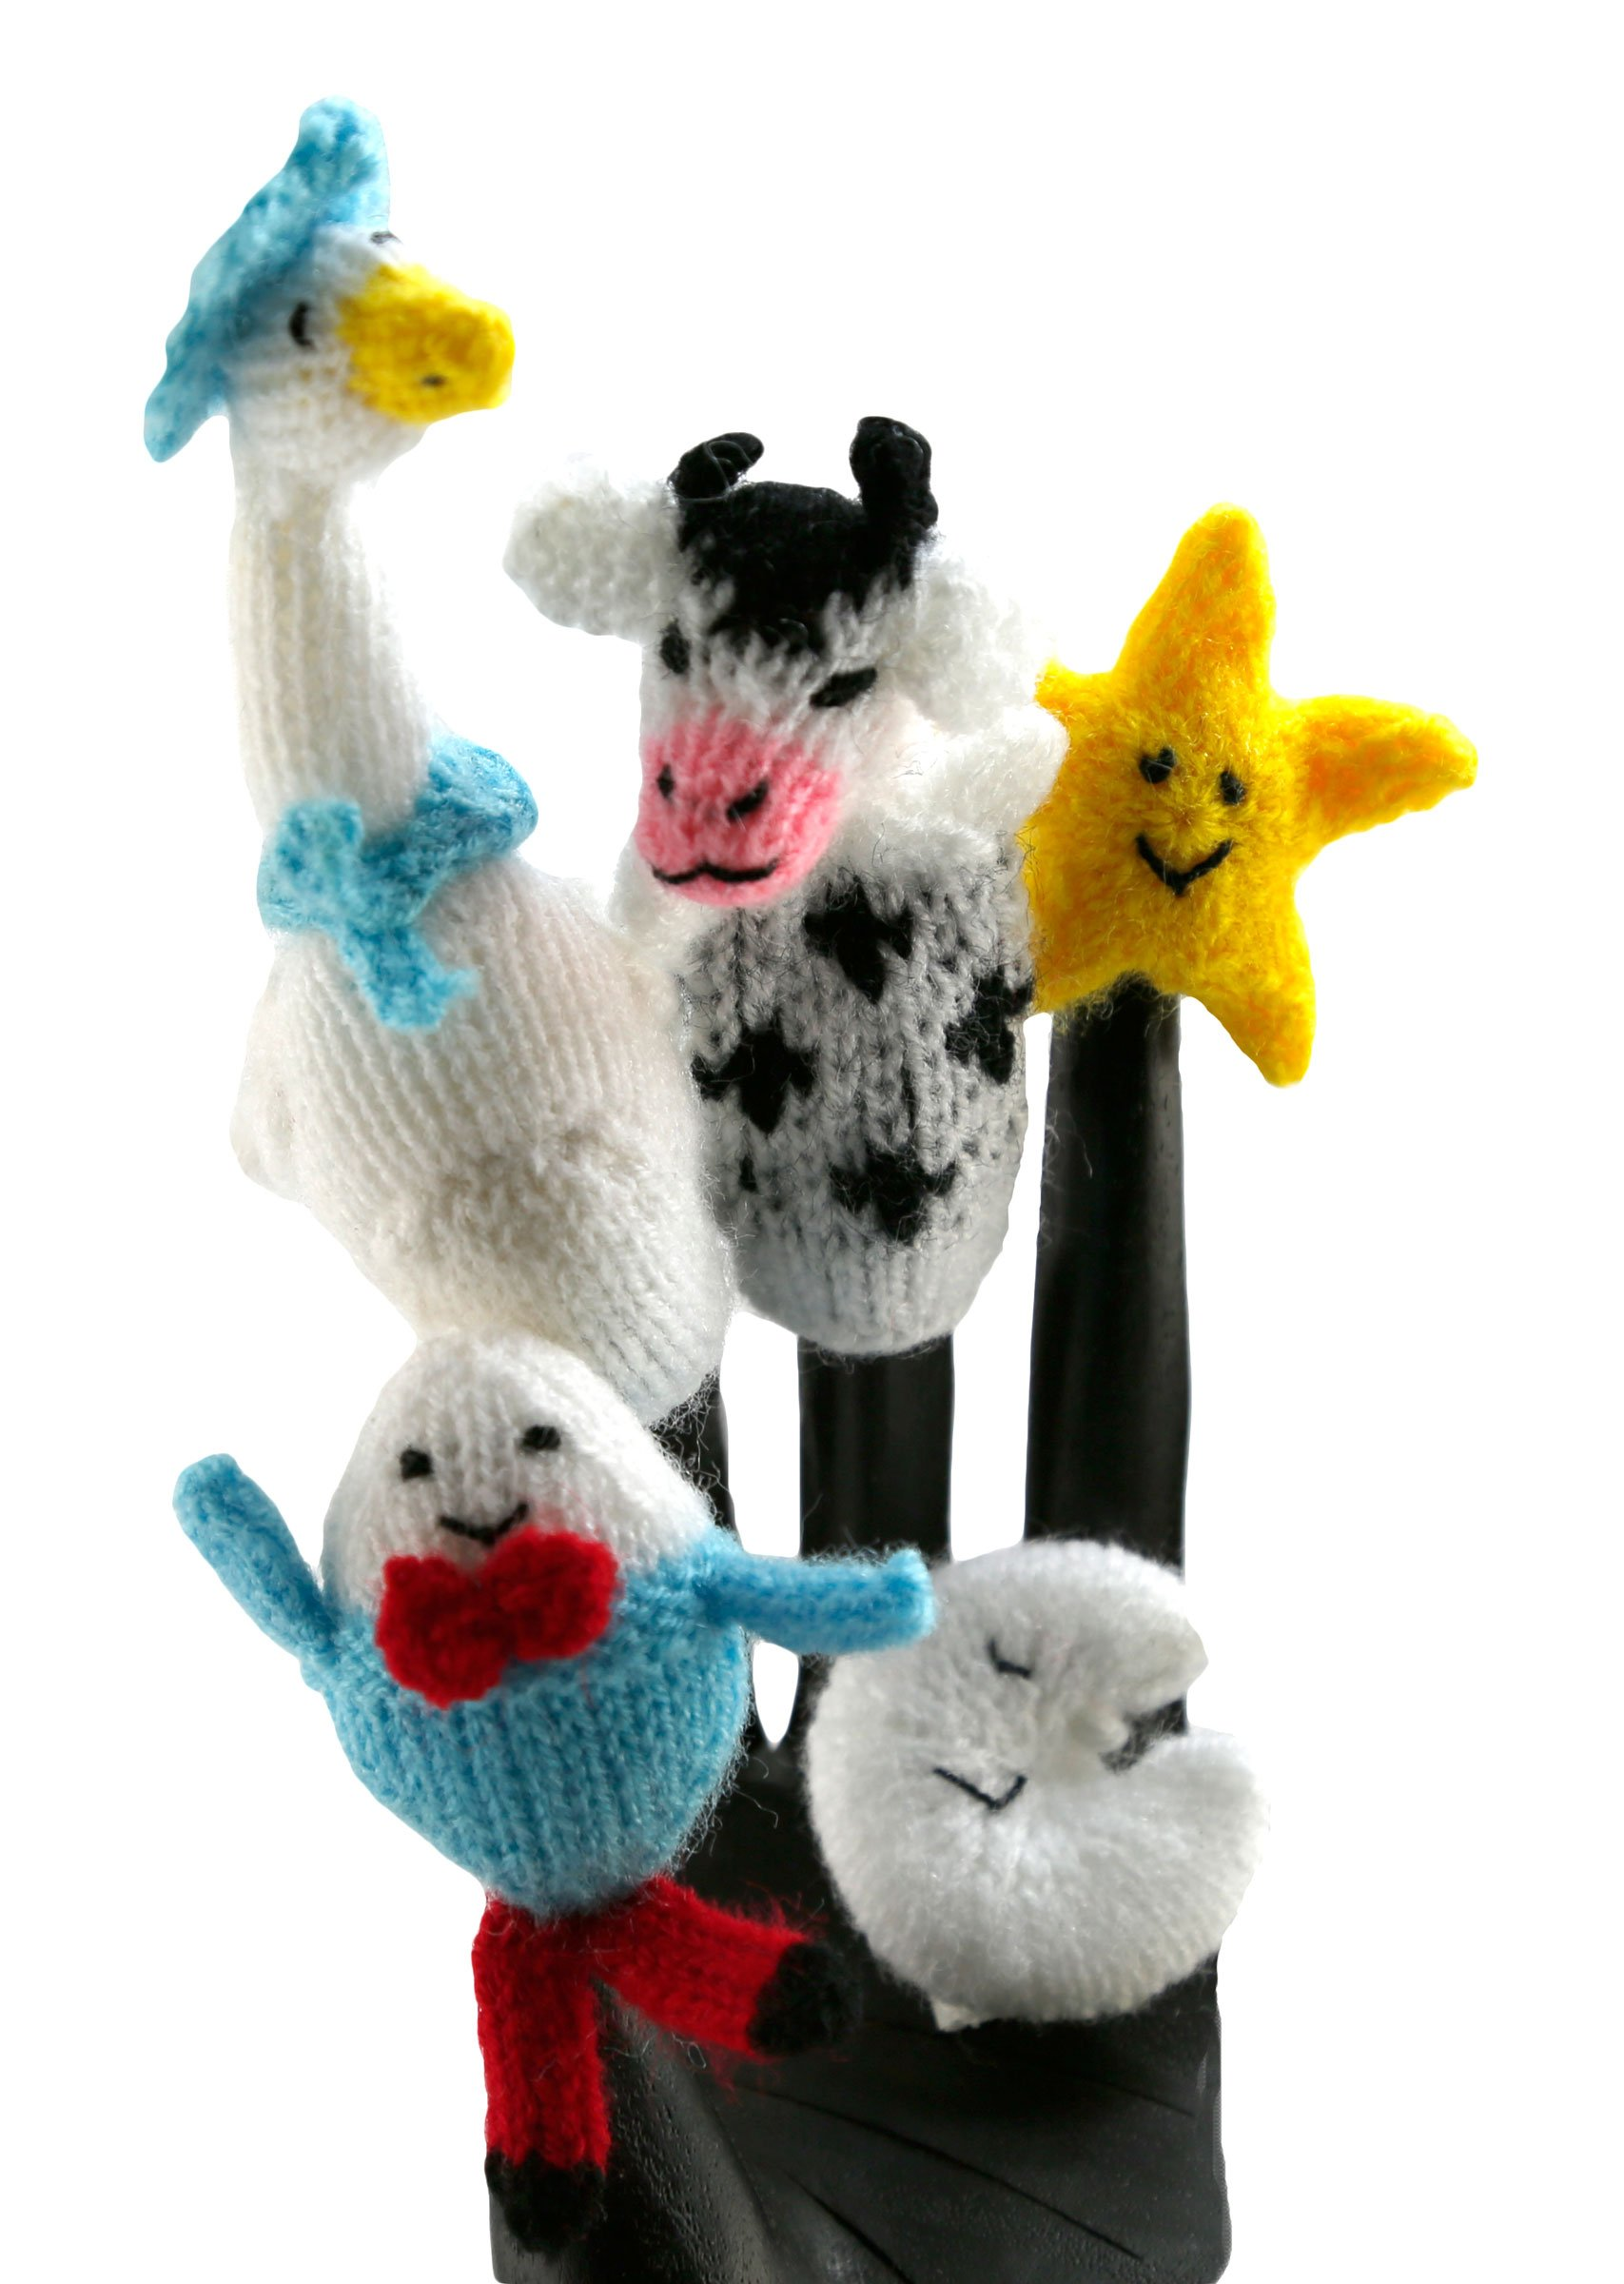 Mother Goose Nursery Ryhmes Finger Puppet Set of 5 - Fair Trade from Peru, Includes Humpty Dumpty, Twinkle Twinkle Little Star, Hey Diddle Diddle The Cow Jumped Over The Moon, and Mother Goose